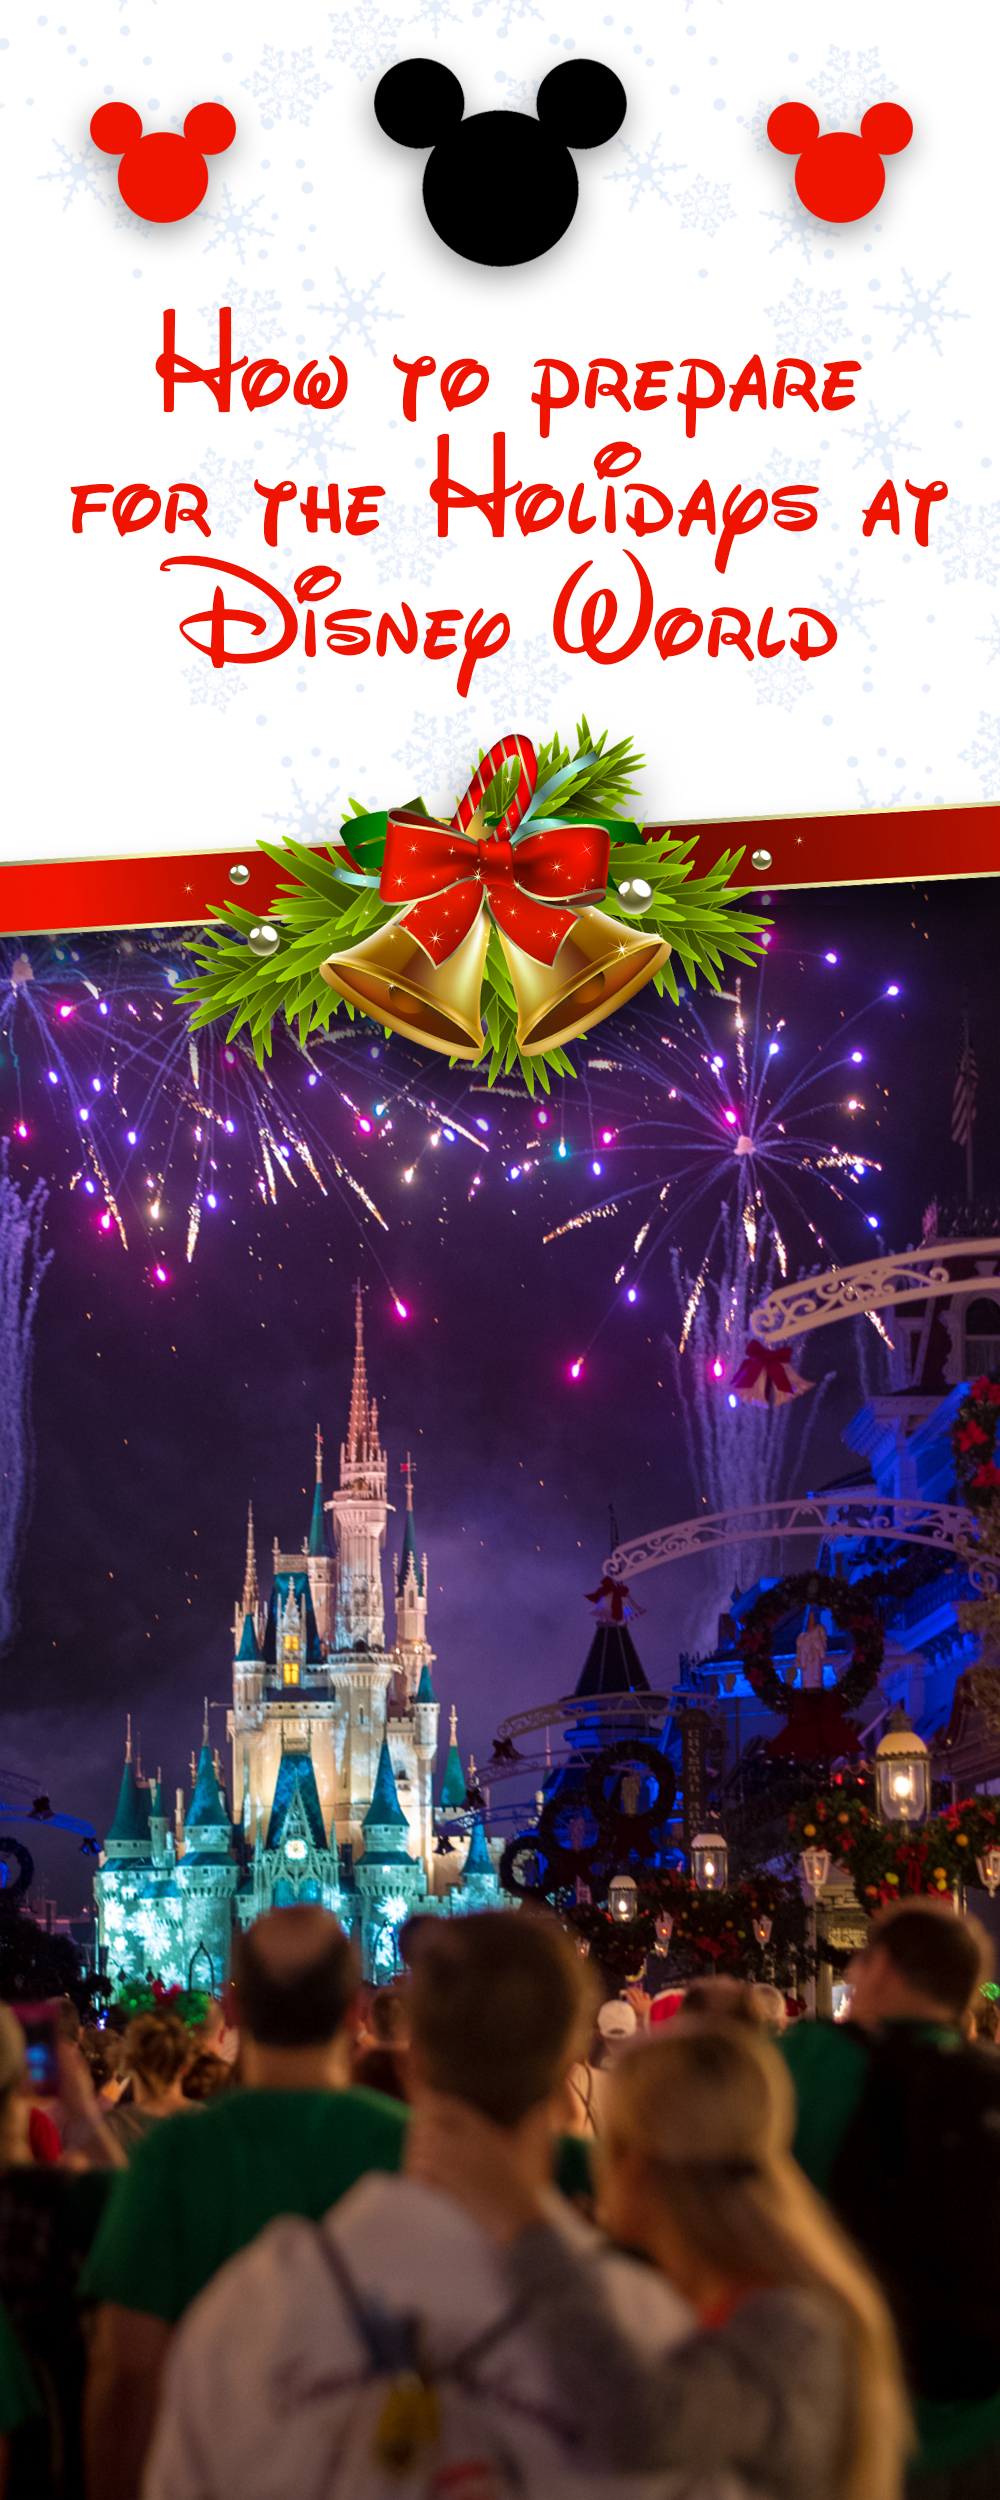 Planning a trip to Disney World during the holidays? Check out my tips and tricks on how to prepare for the holidays at Disney World.